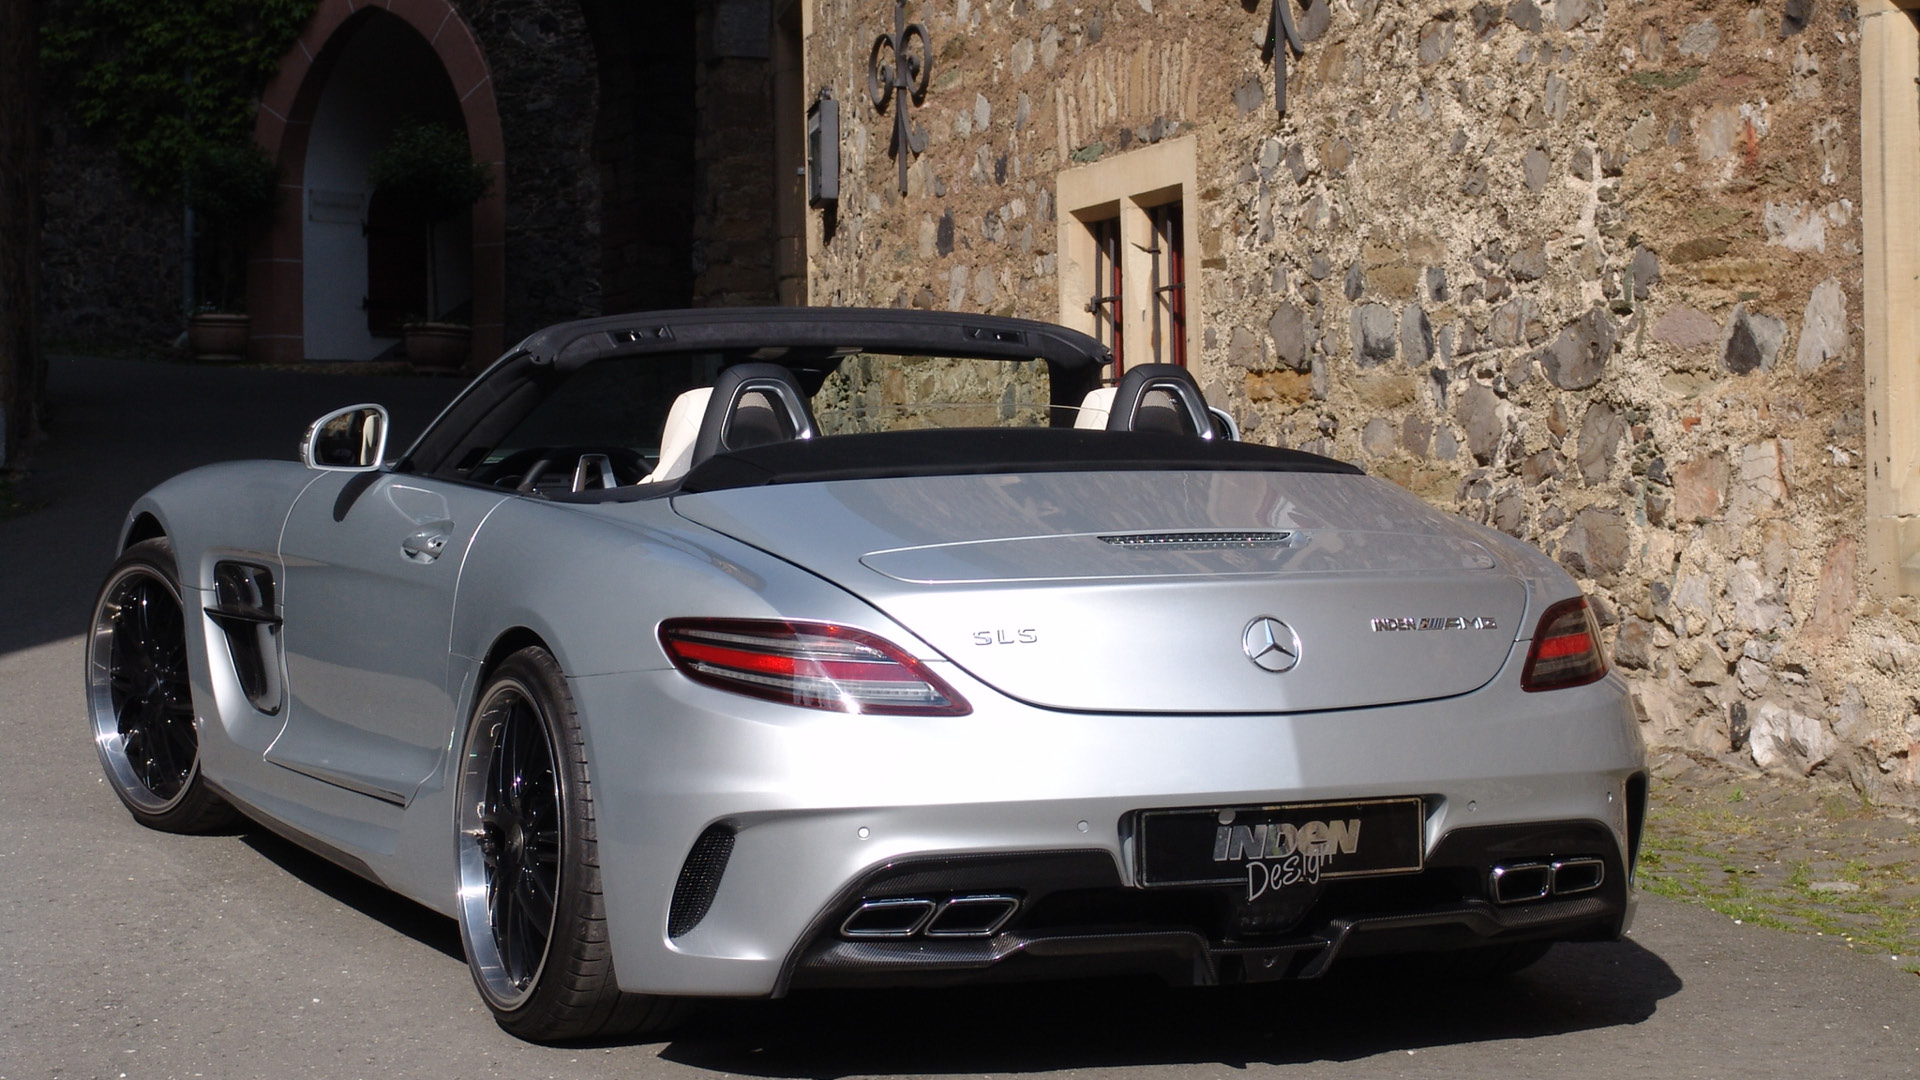 Hp C Amg Black Series With Awd By Gad Tuning moreover Mercedes Police in addition Mercedes E Rodas in addition White Mercedes W E Amg Hre Perfomance Wheels together with C E F Ea Eff E C. on mercedes sls amg black series